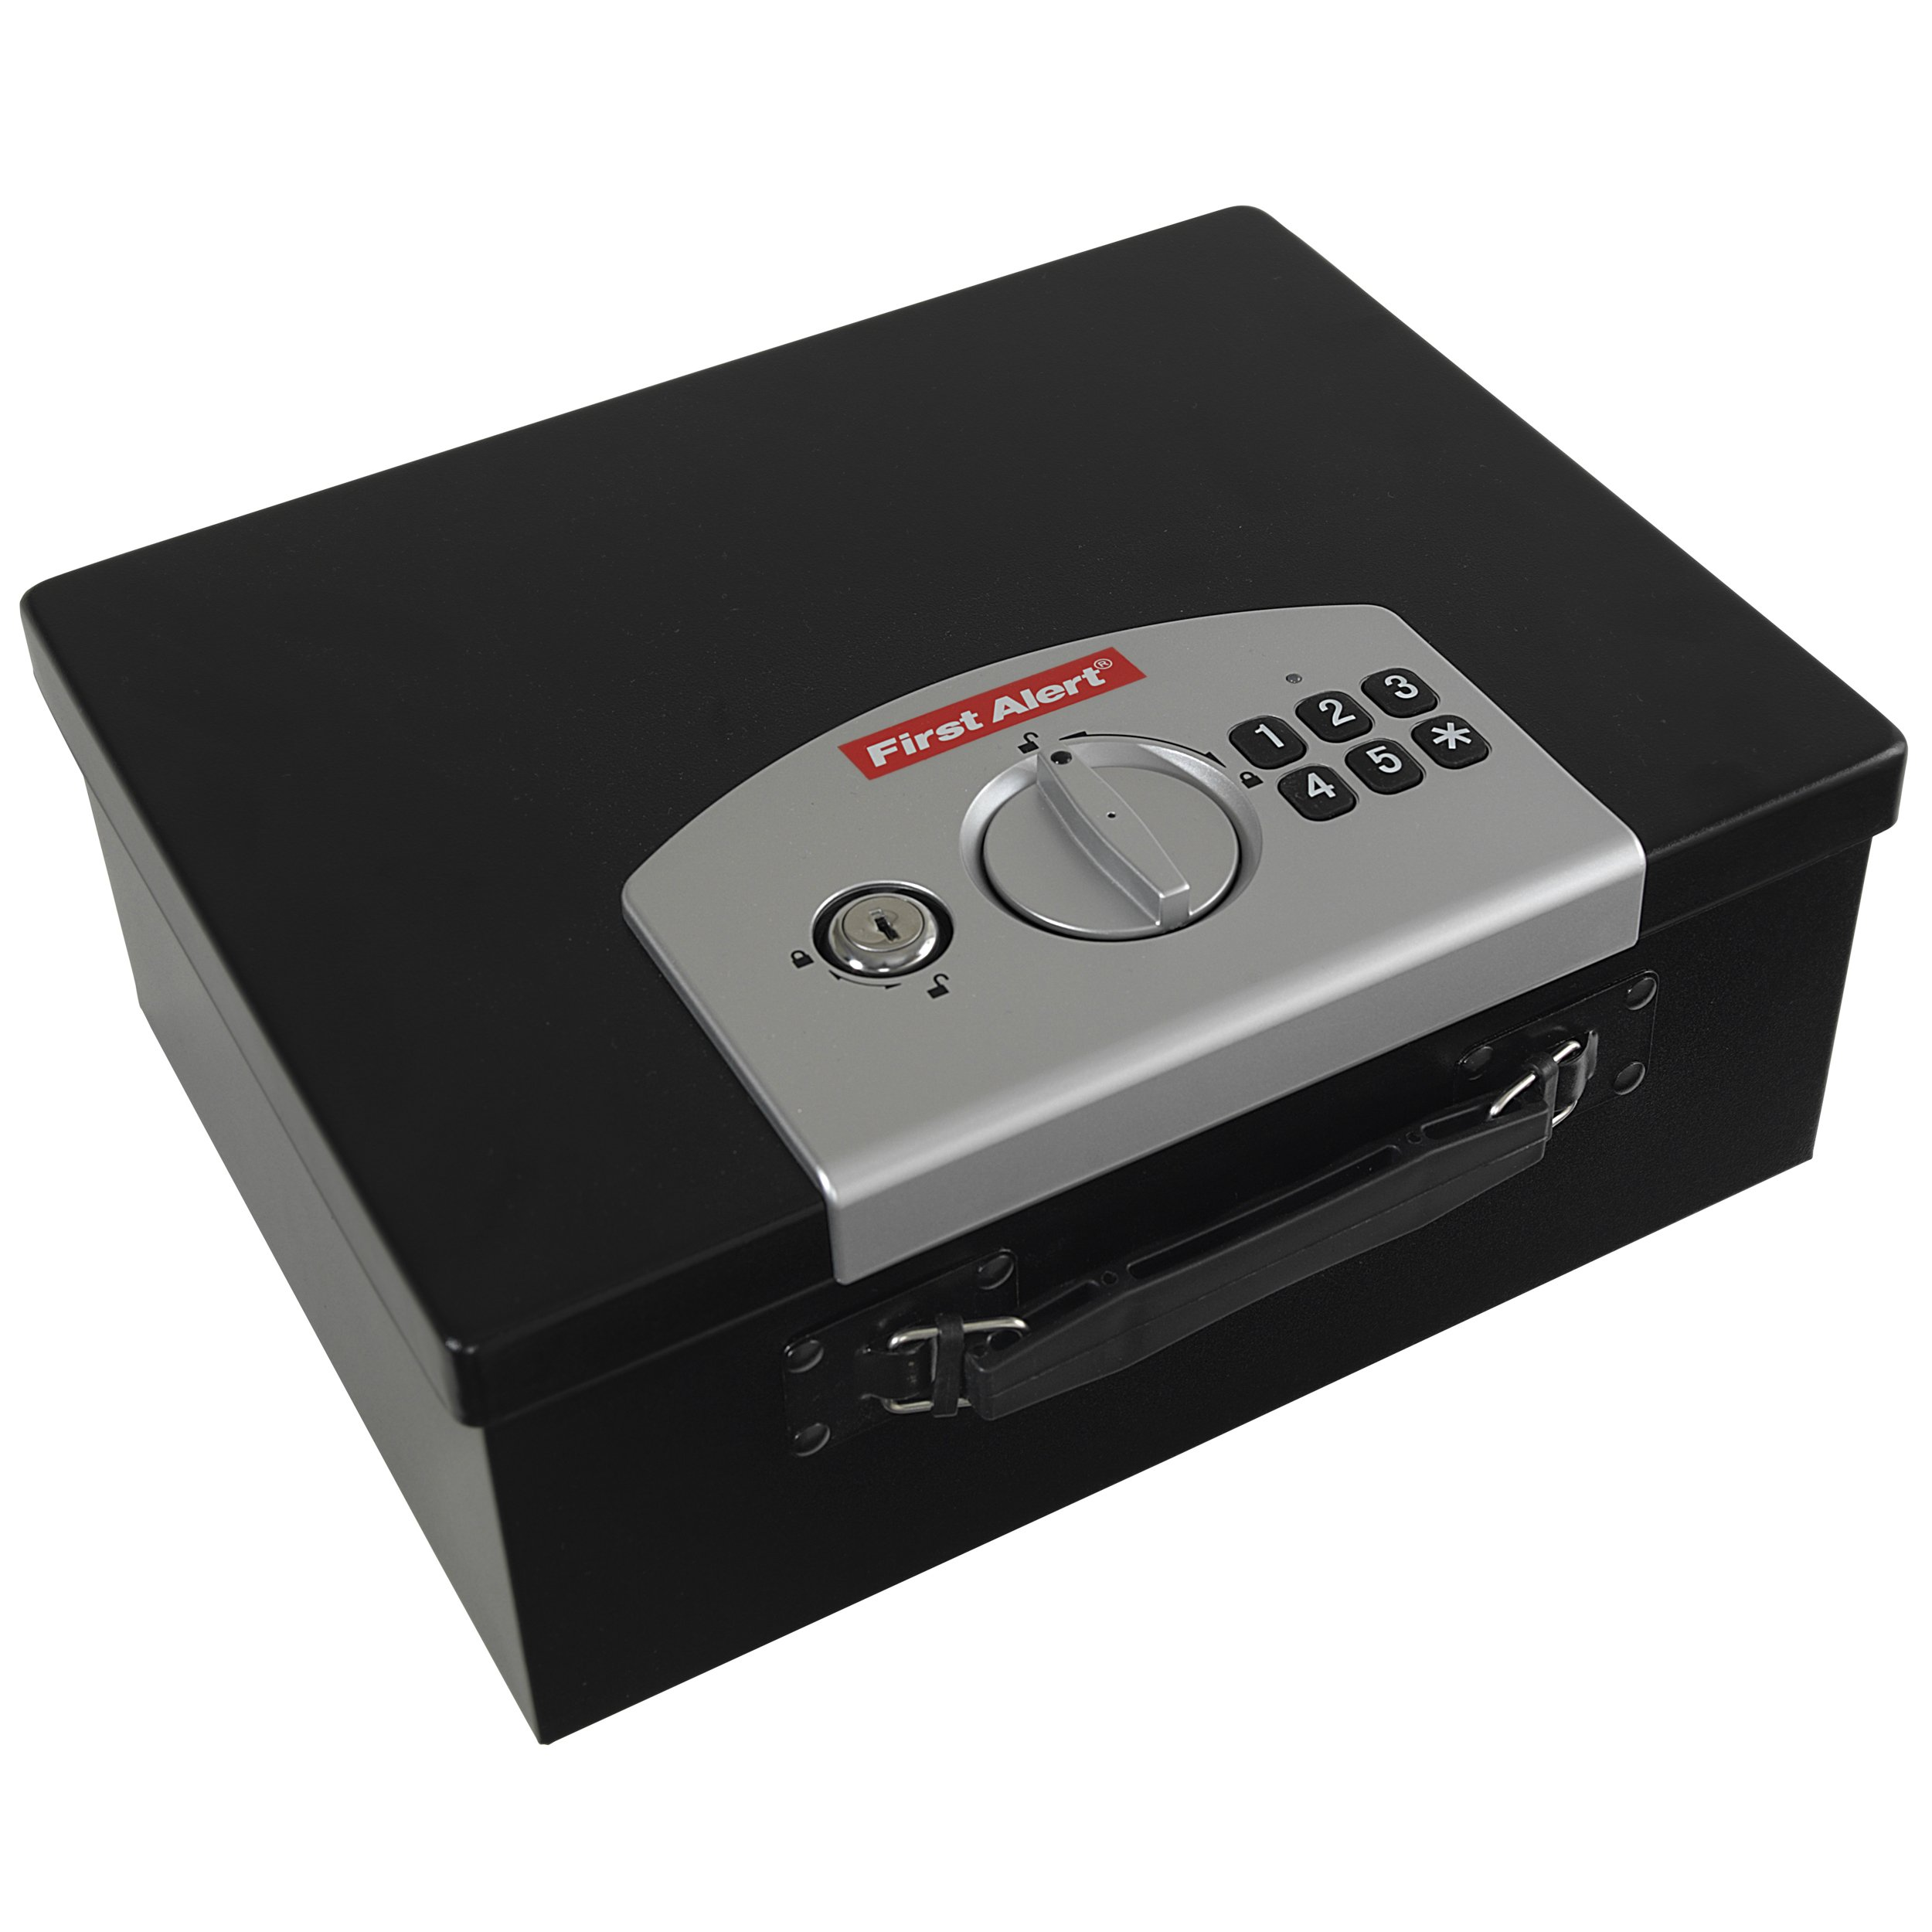 First Alert 3035DF Deluxe Digital Security Box, Black/Silver by First Alert